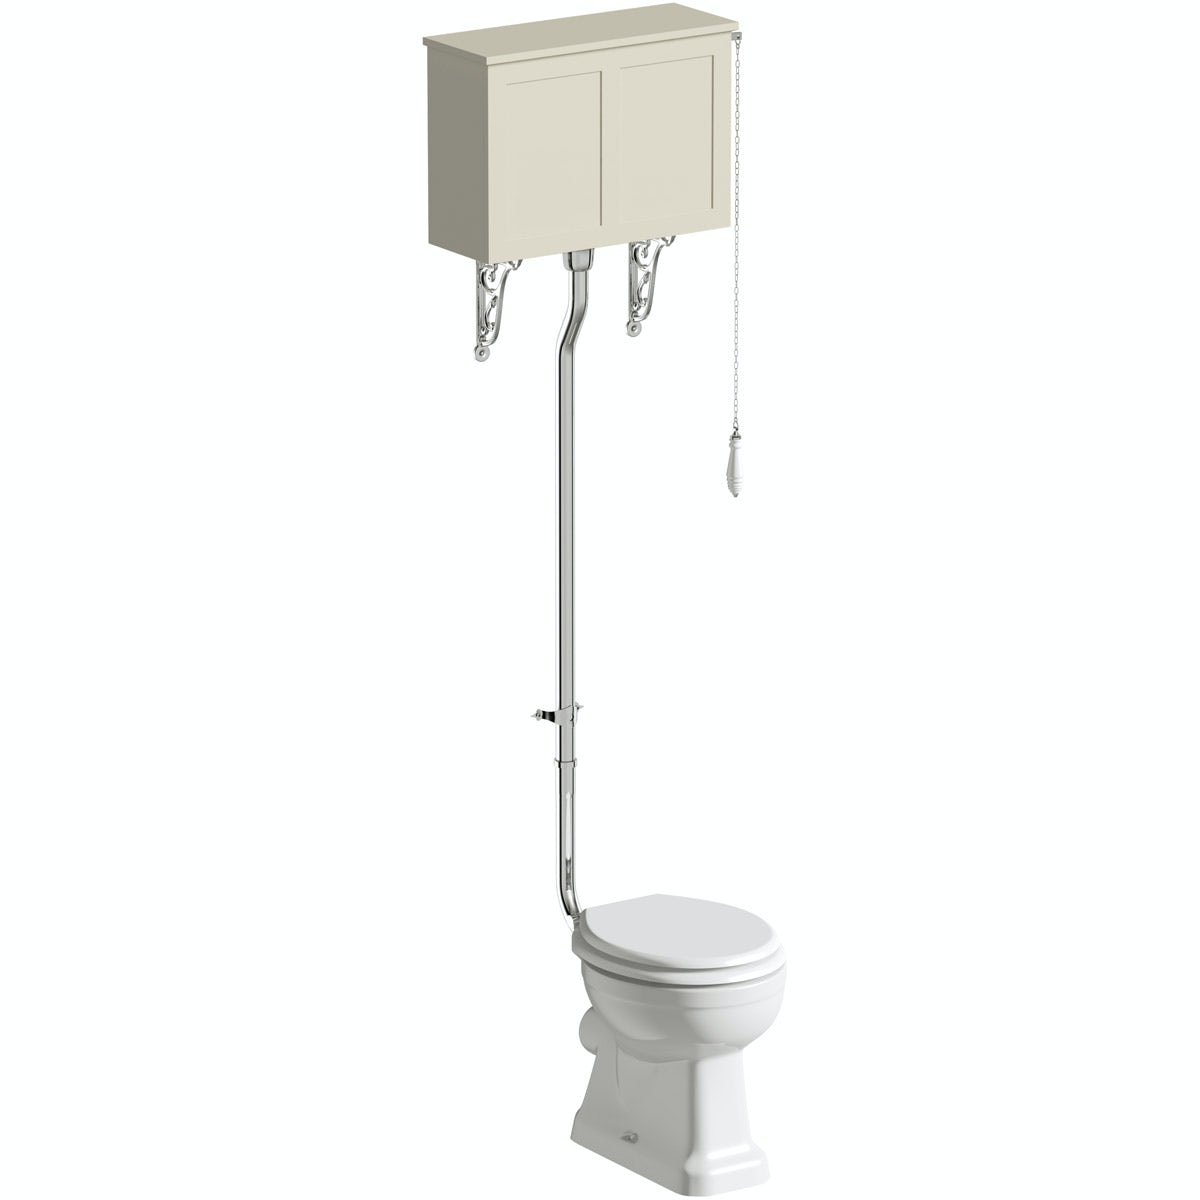 The Bath Co. Camberley high level toilet with satin ivory toilet box and seat